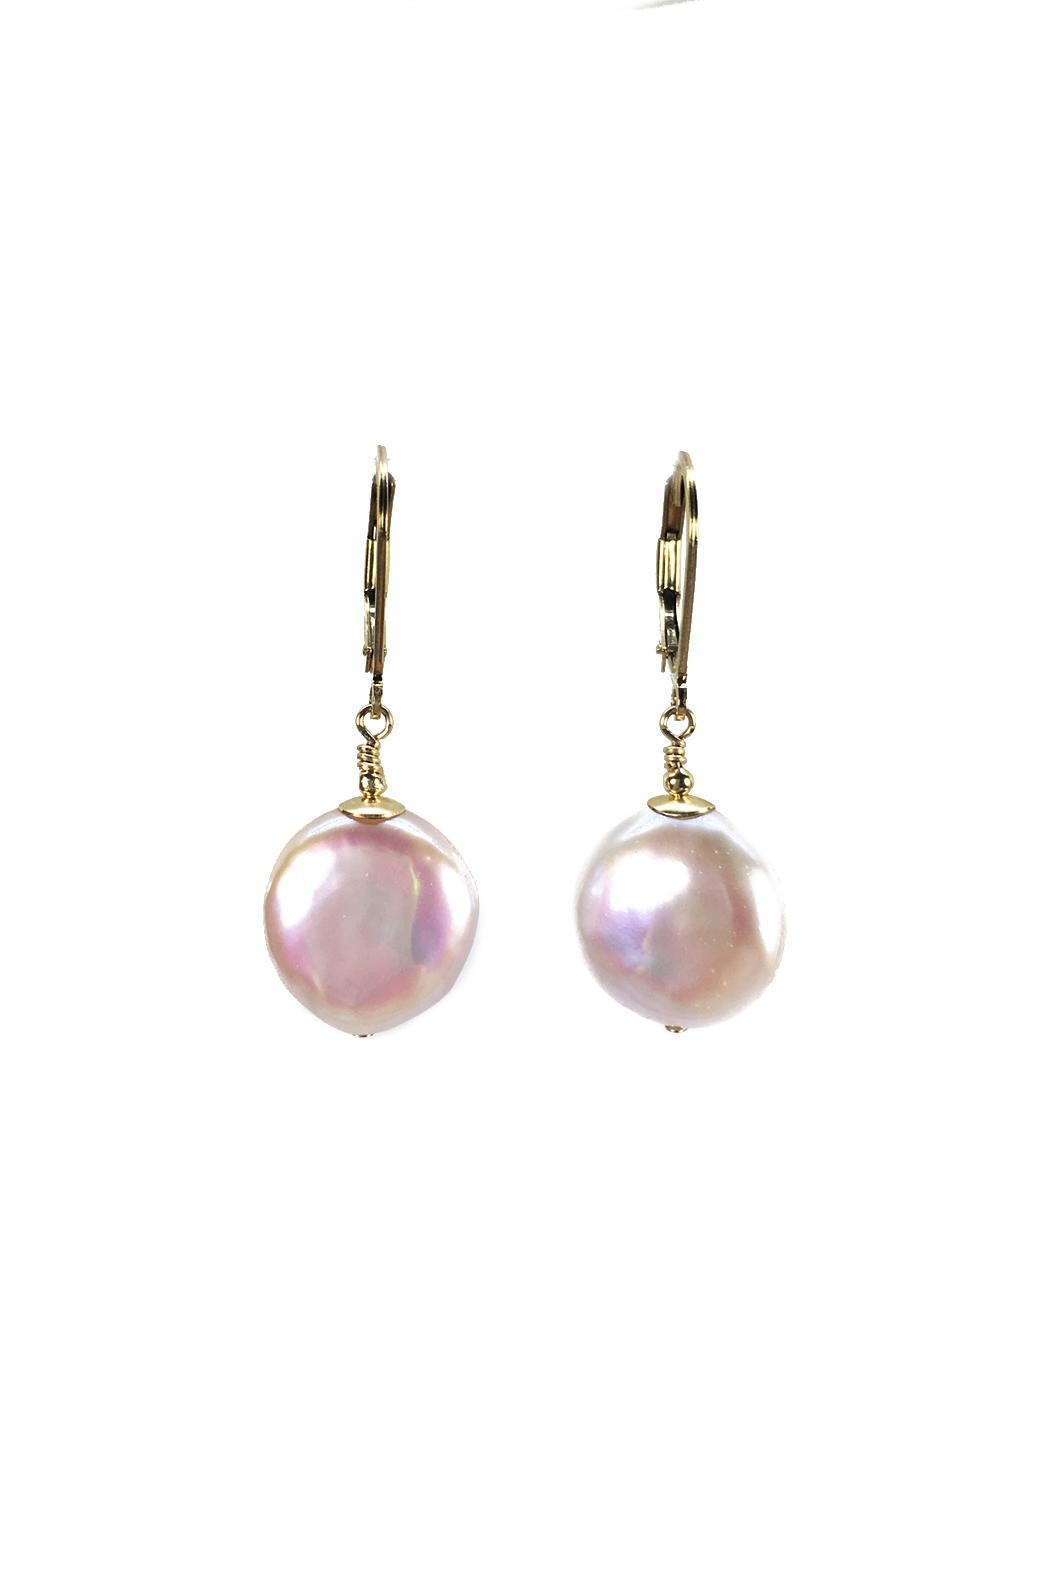 Melinda Lawton Jewelry Coin Pearl Earrings - Main Image